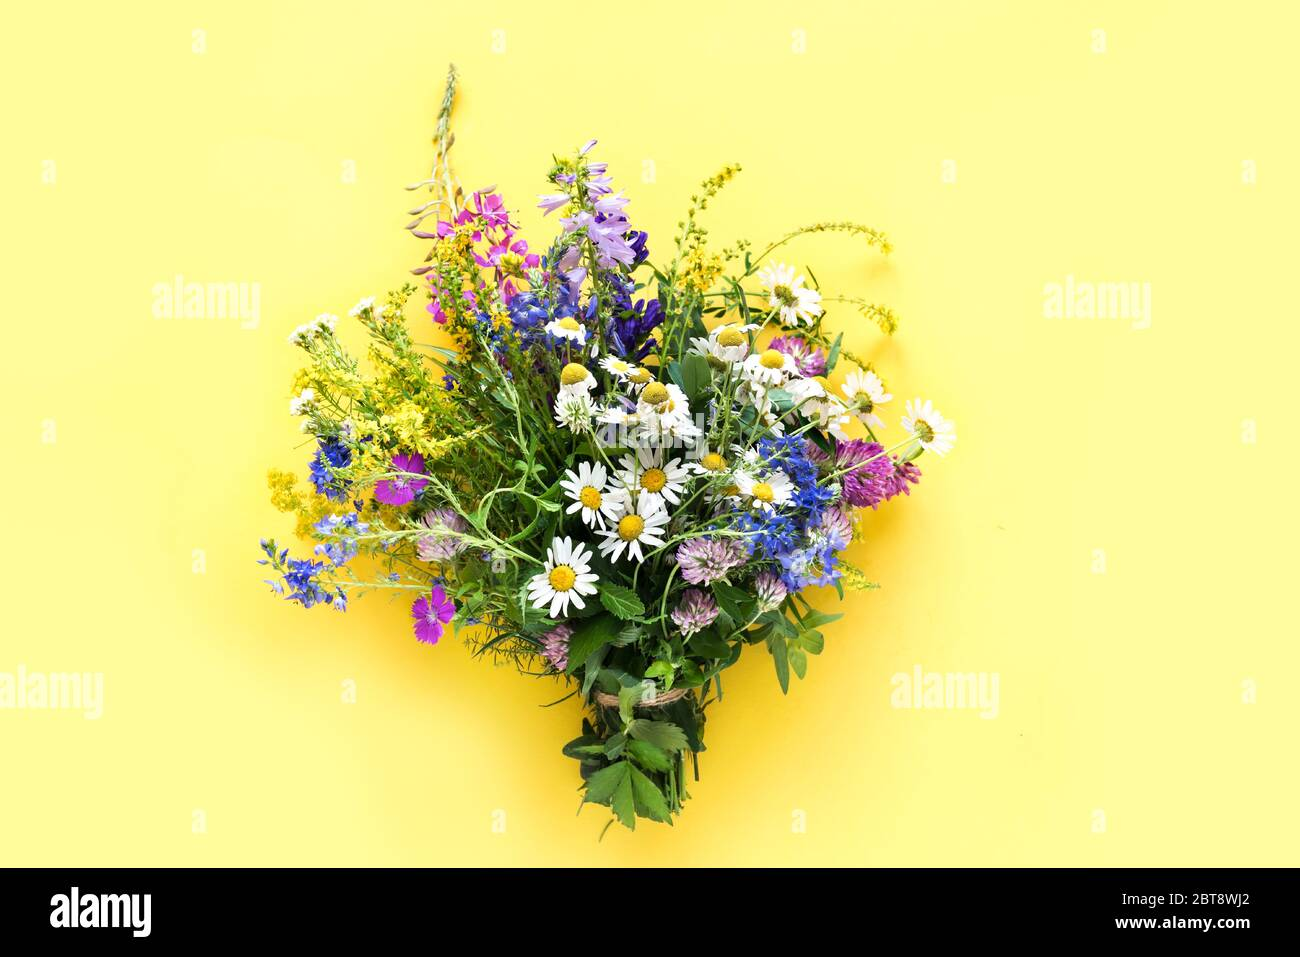 Wild summer flowers, bunch of meadow flowers on yellow background, top view, copy space. Stock Photo